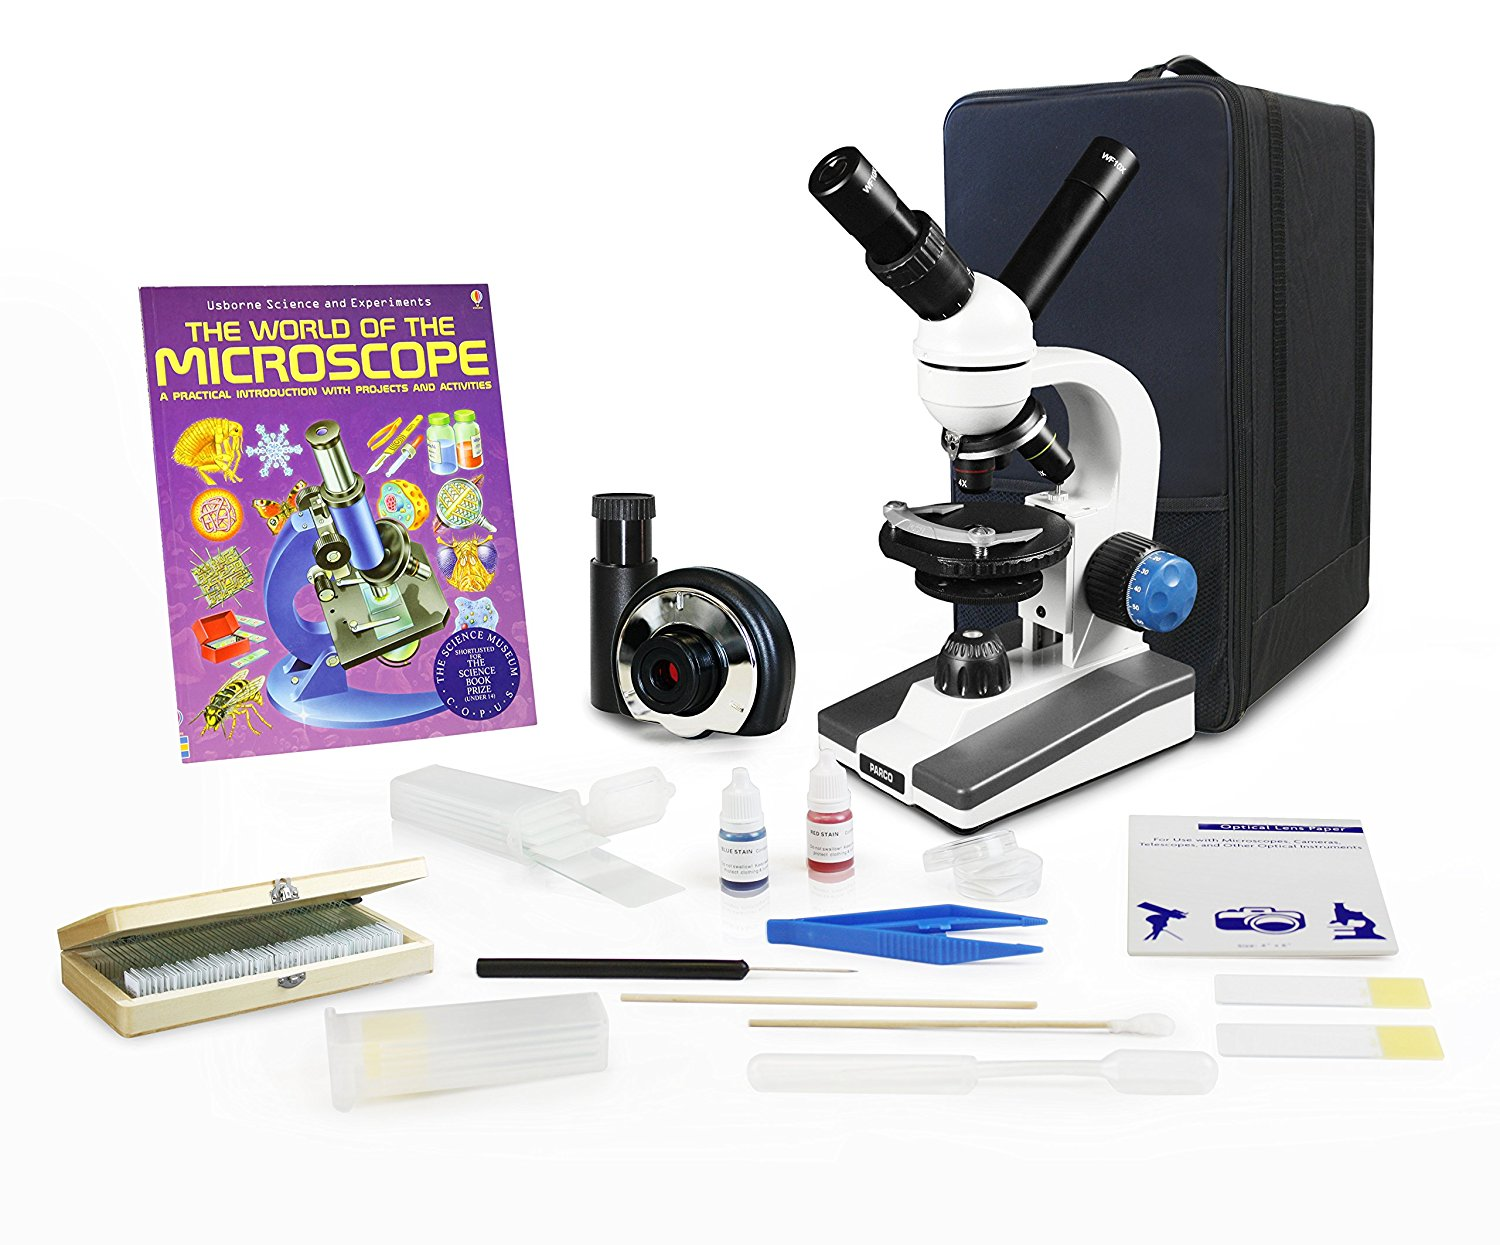 Parco Scientific Dual View Elementary Level Microscope, Microscope Book, Microscope Discovery Kit, 50 Prepared Slides Set, Carrying Case, 1.3MP Digital Eyepiece Camera, Free Gift Package ($20 Value)